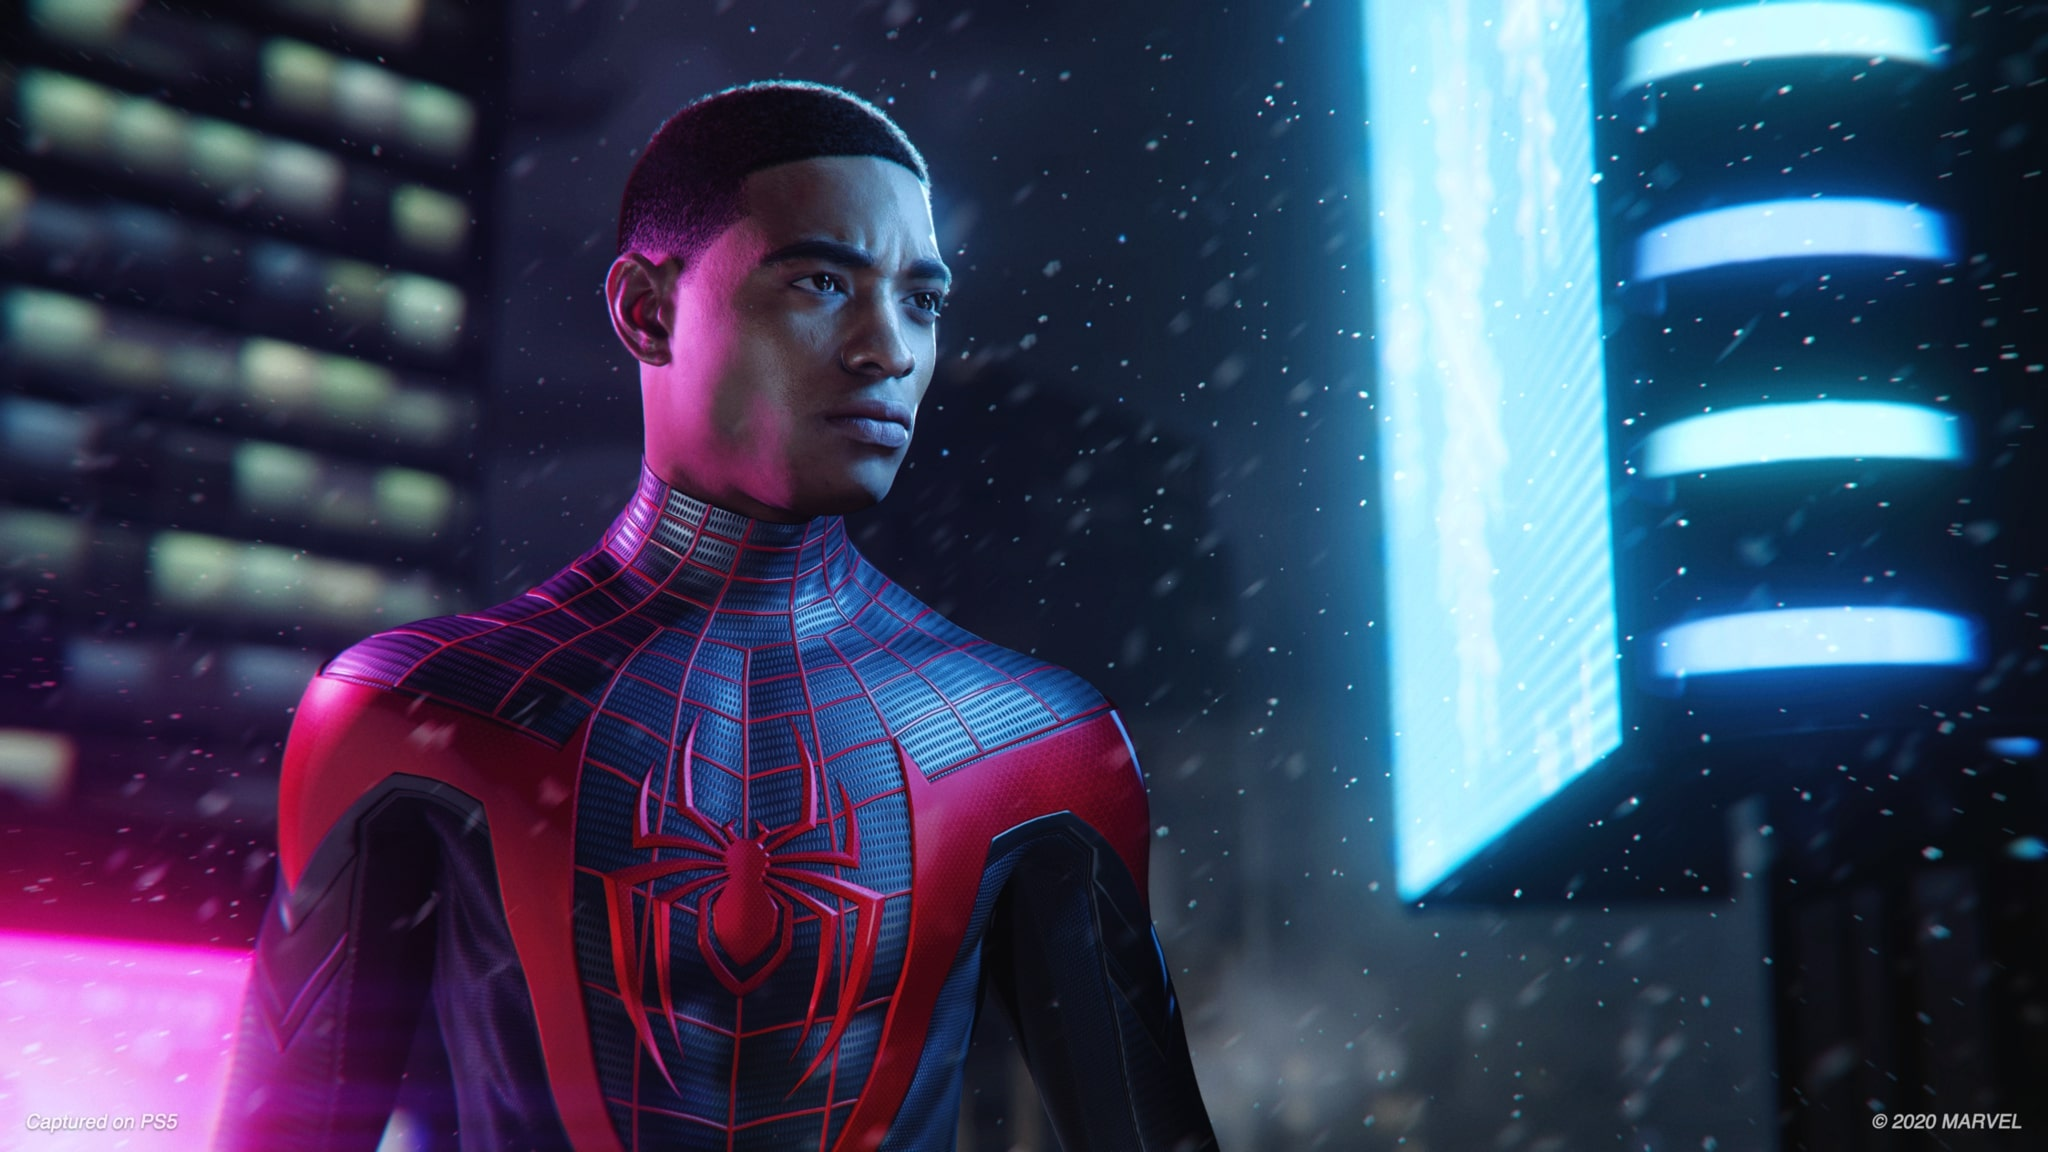 Insomniac shows-off Spider-Man: Miles Morales on PS5 at 4K HDR with cheeky teaser | GamesRadar+